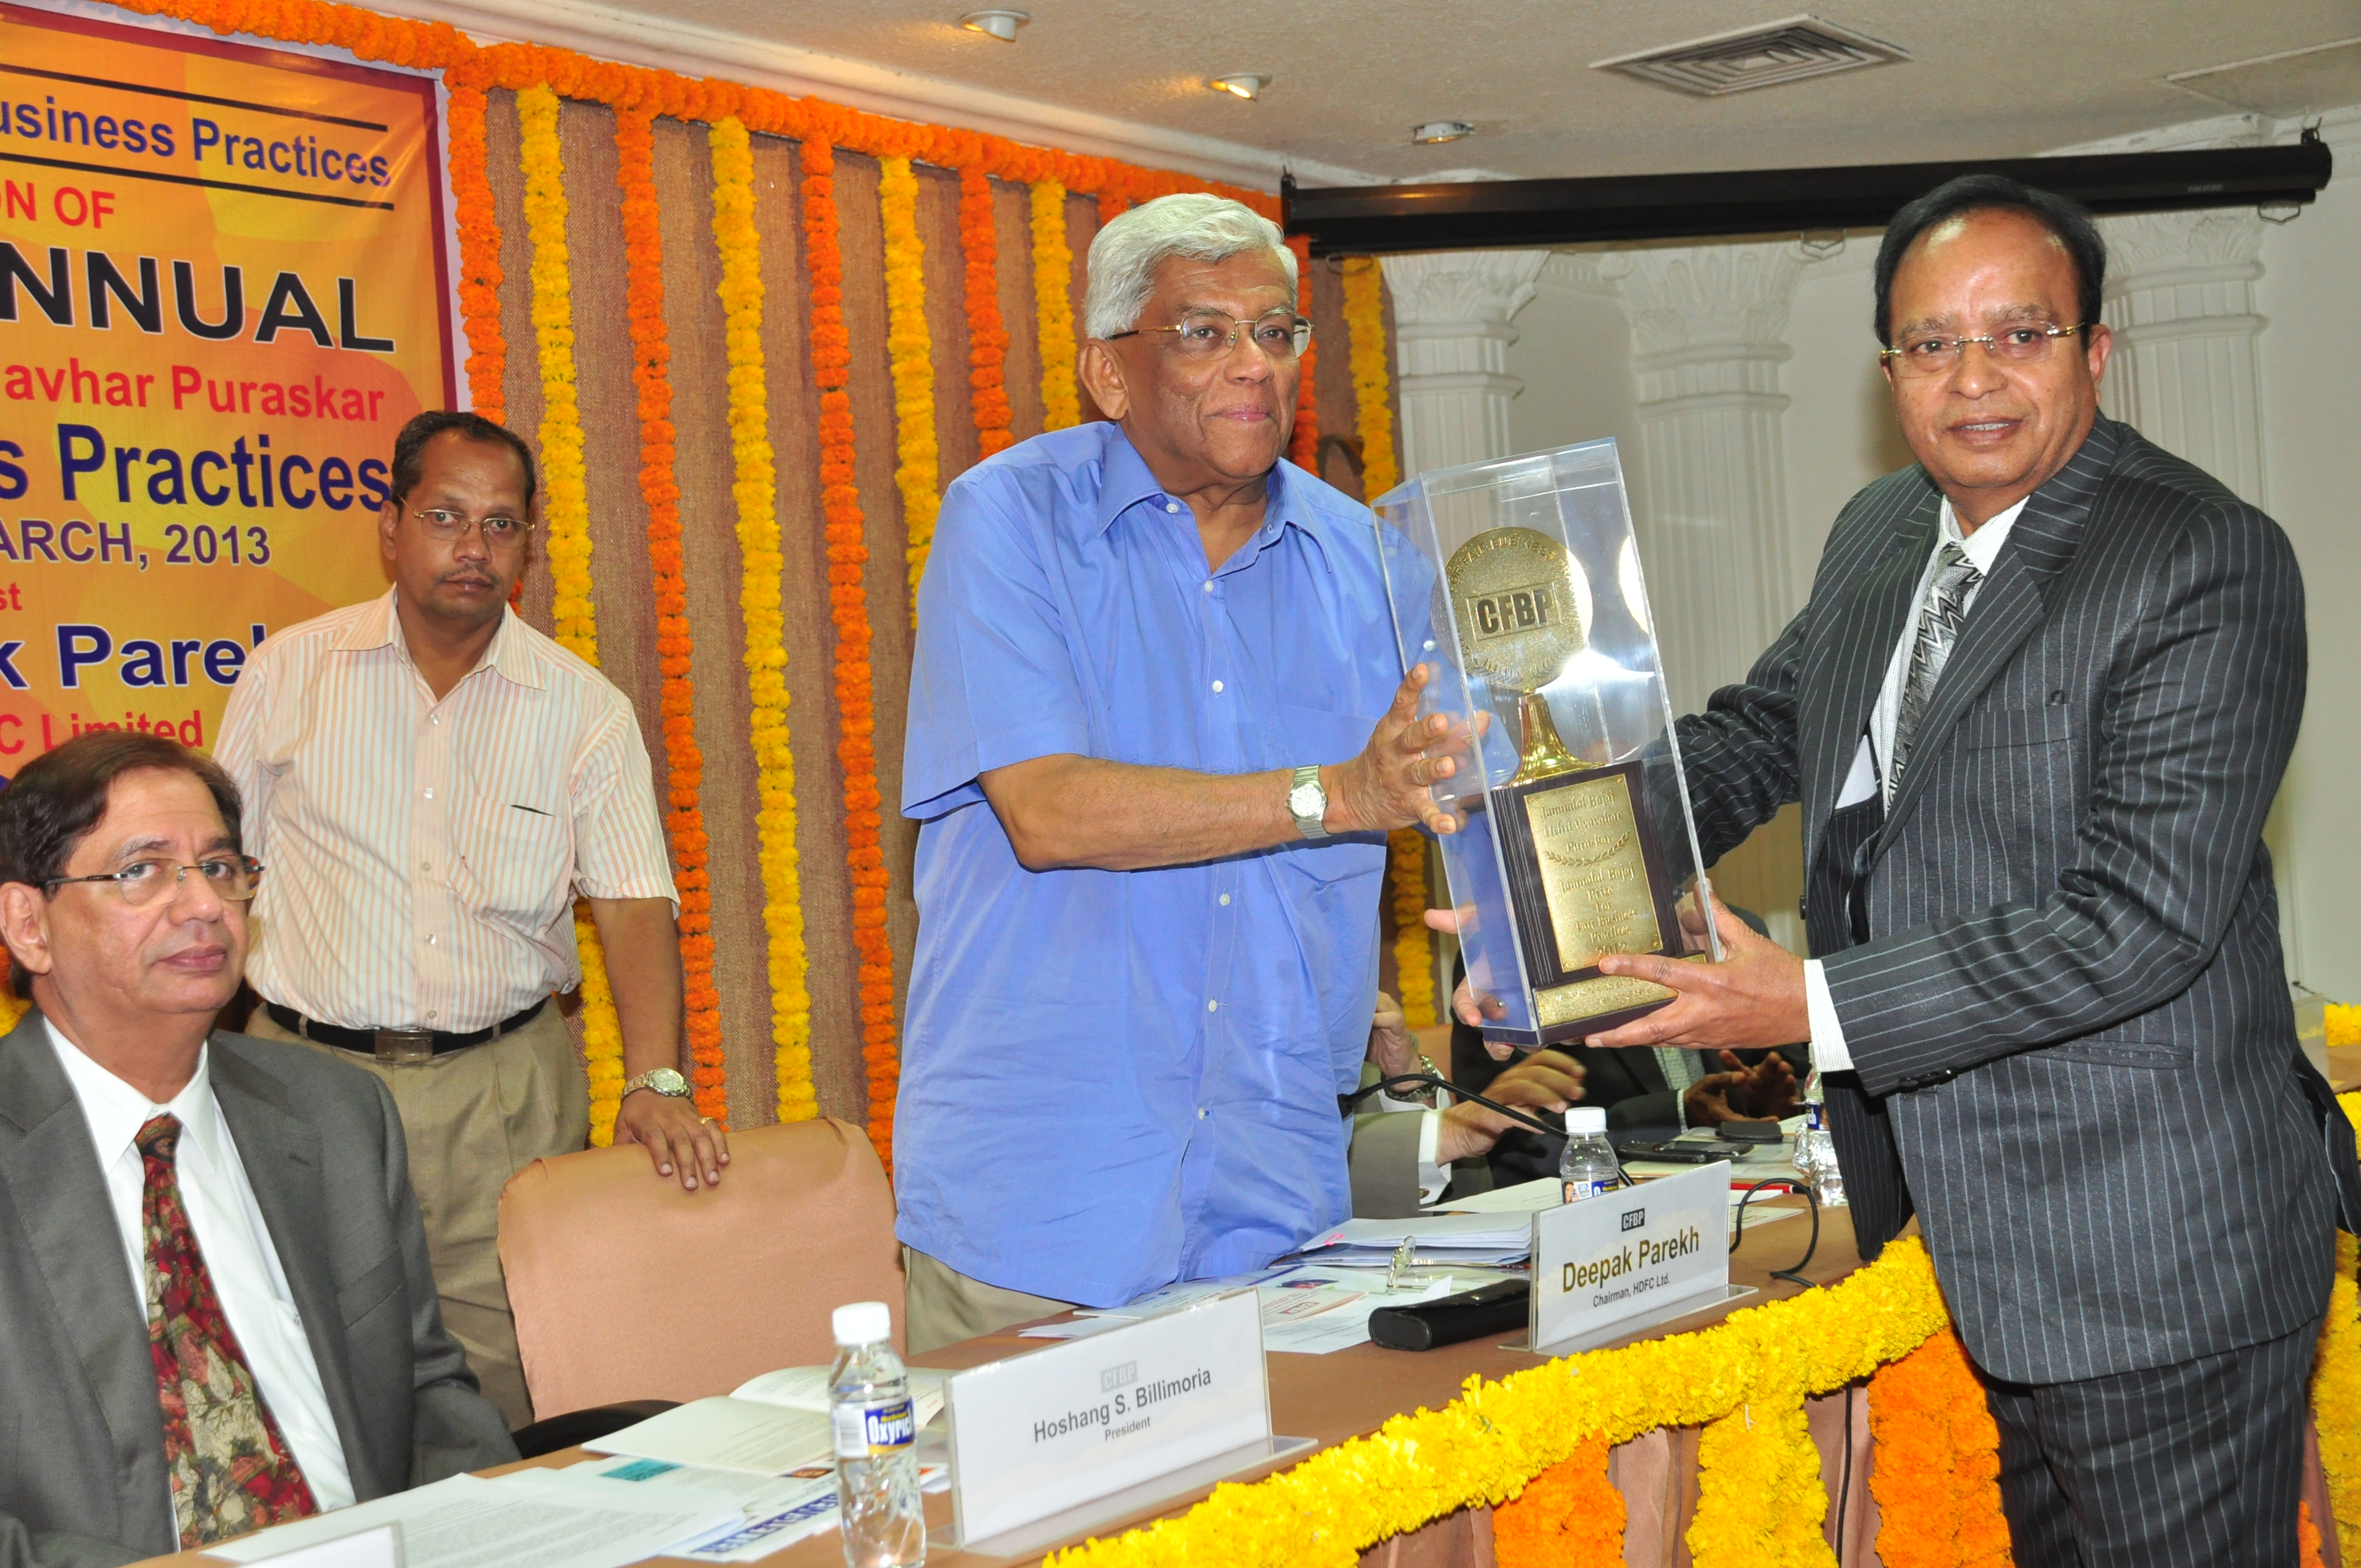 Mr.Narendrakumar A. Baldota, (third from left) Chairman & Managing Director, MSPL Limited and is presented with CFBP Jamnalal Bajaj Award for Fair Business Practices for 2012 by Mr. Deepak Parekh, Chairman, HDFC Ltd, at a function held in Mumbai.